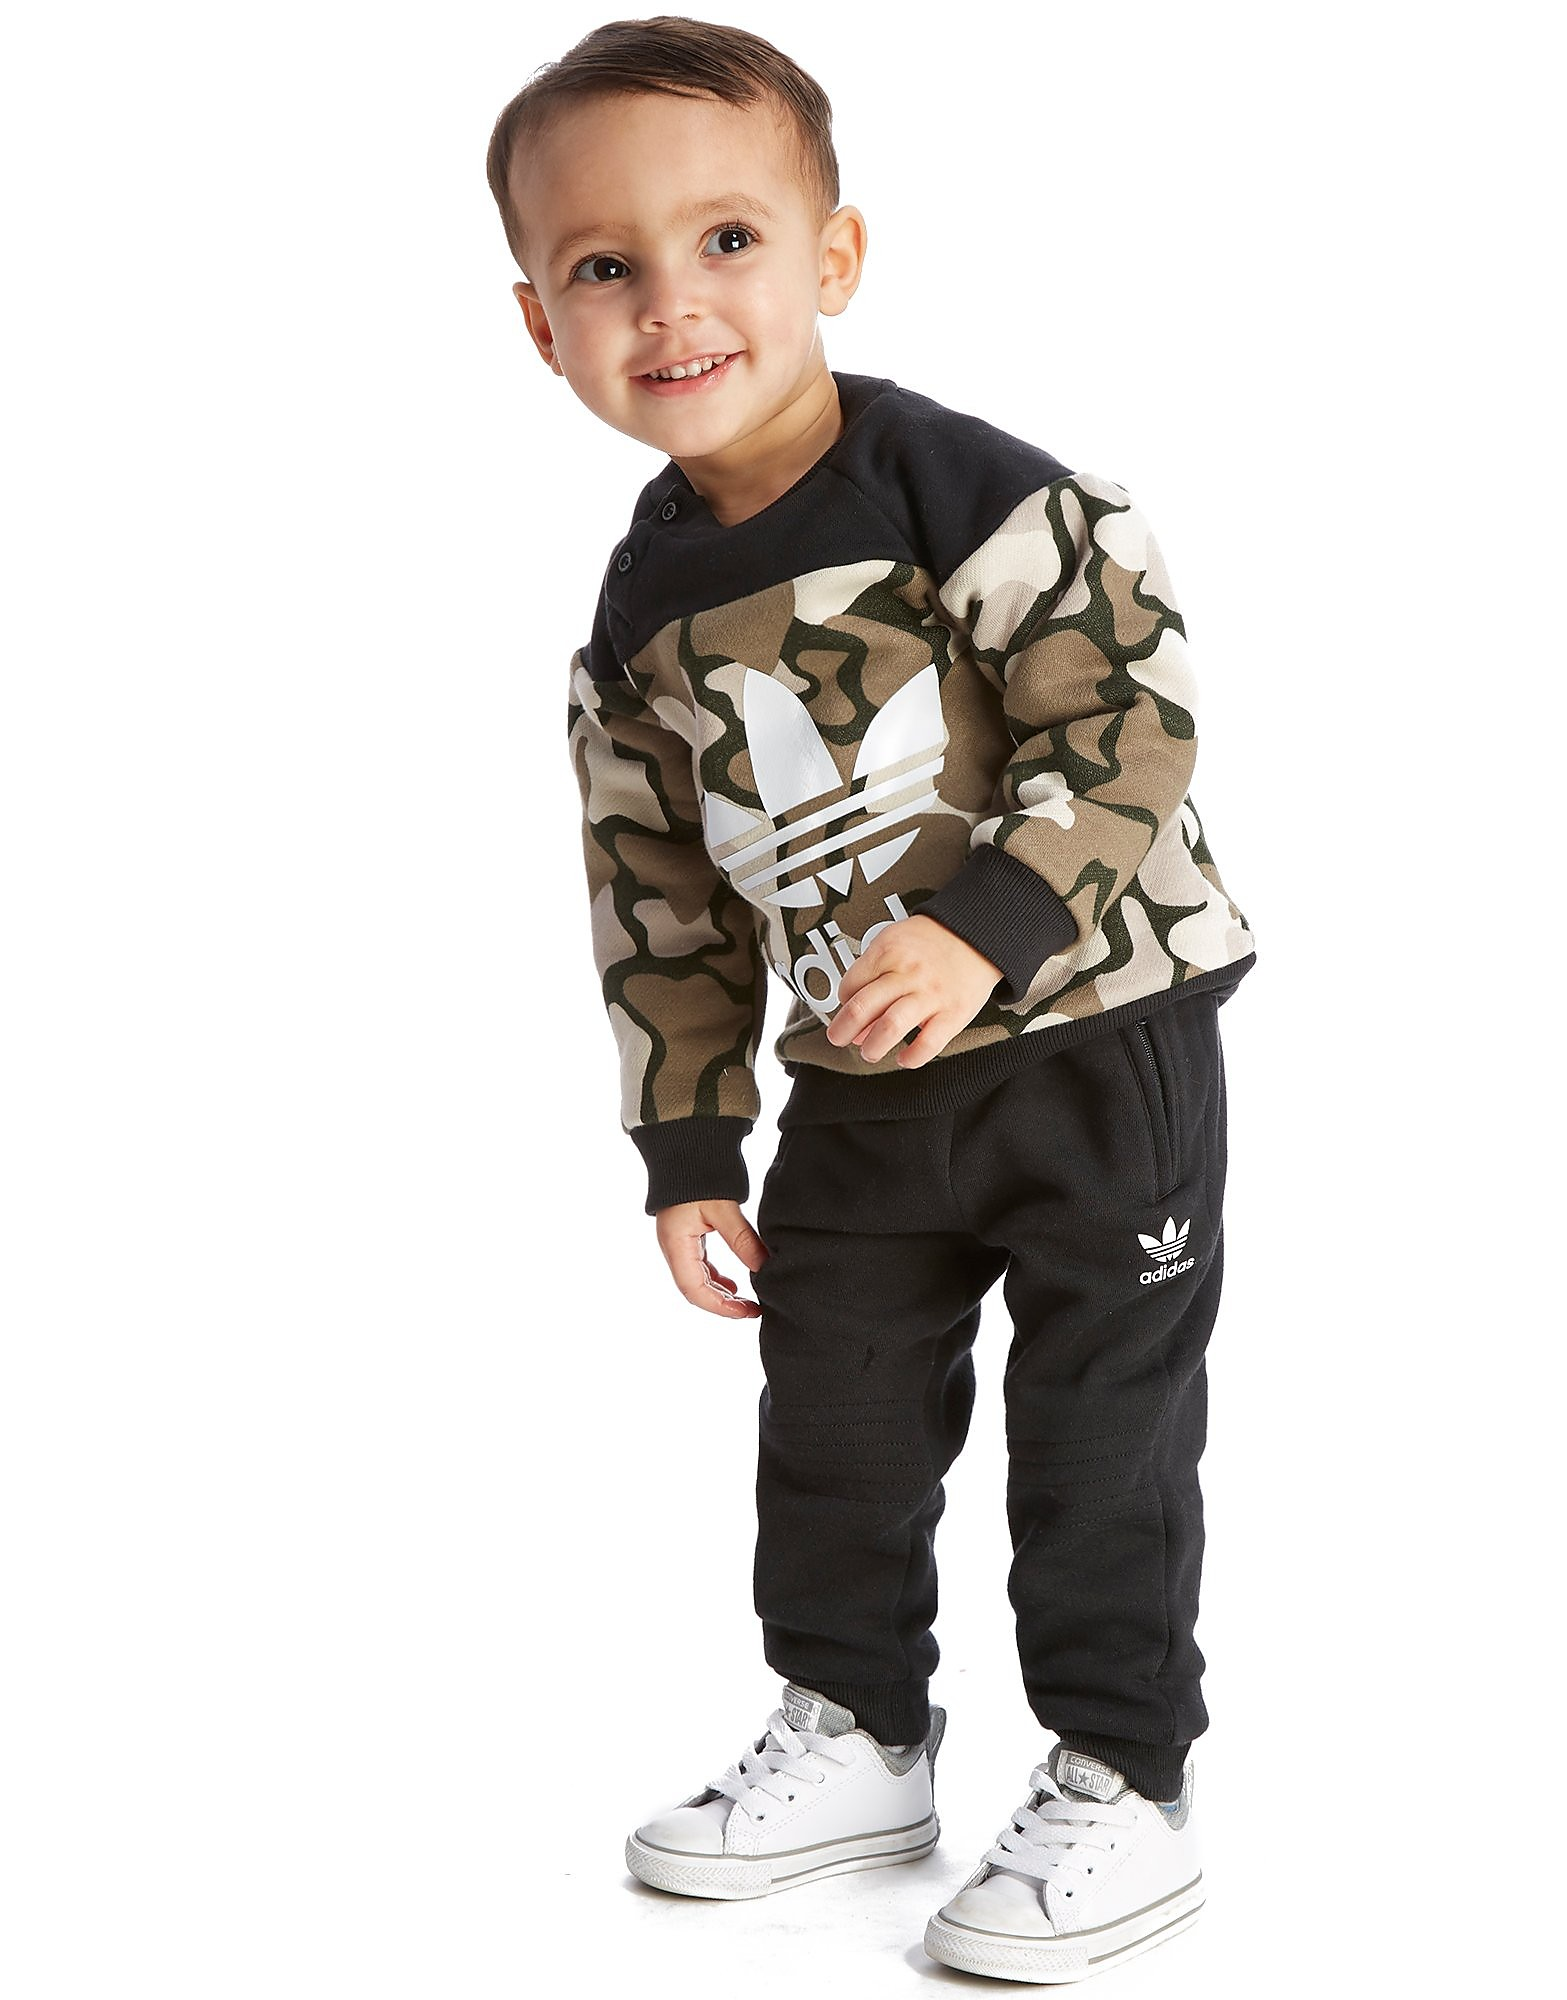 adidas Originals Europe 2 Camo Crew Suit Infant